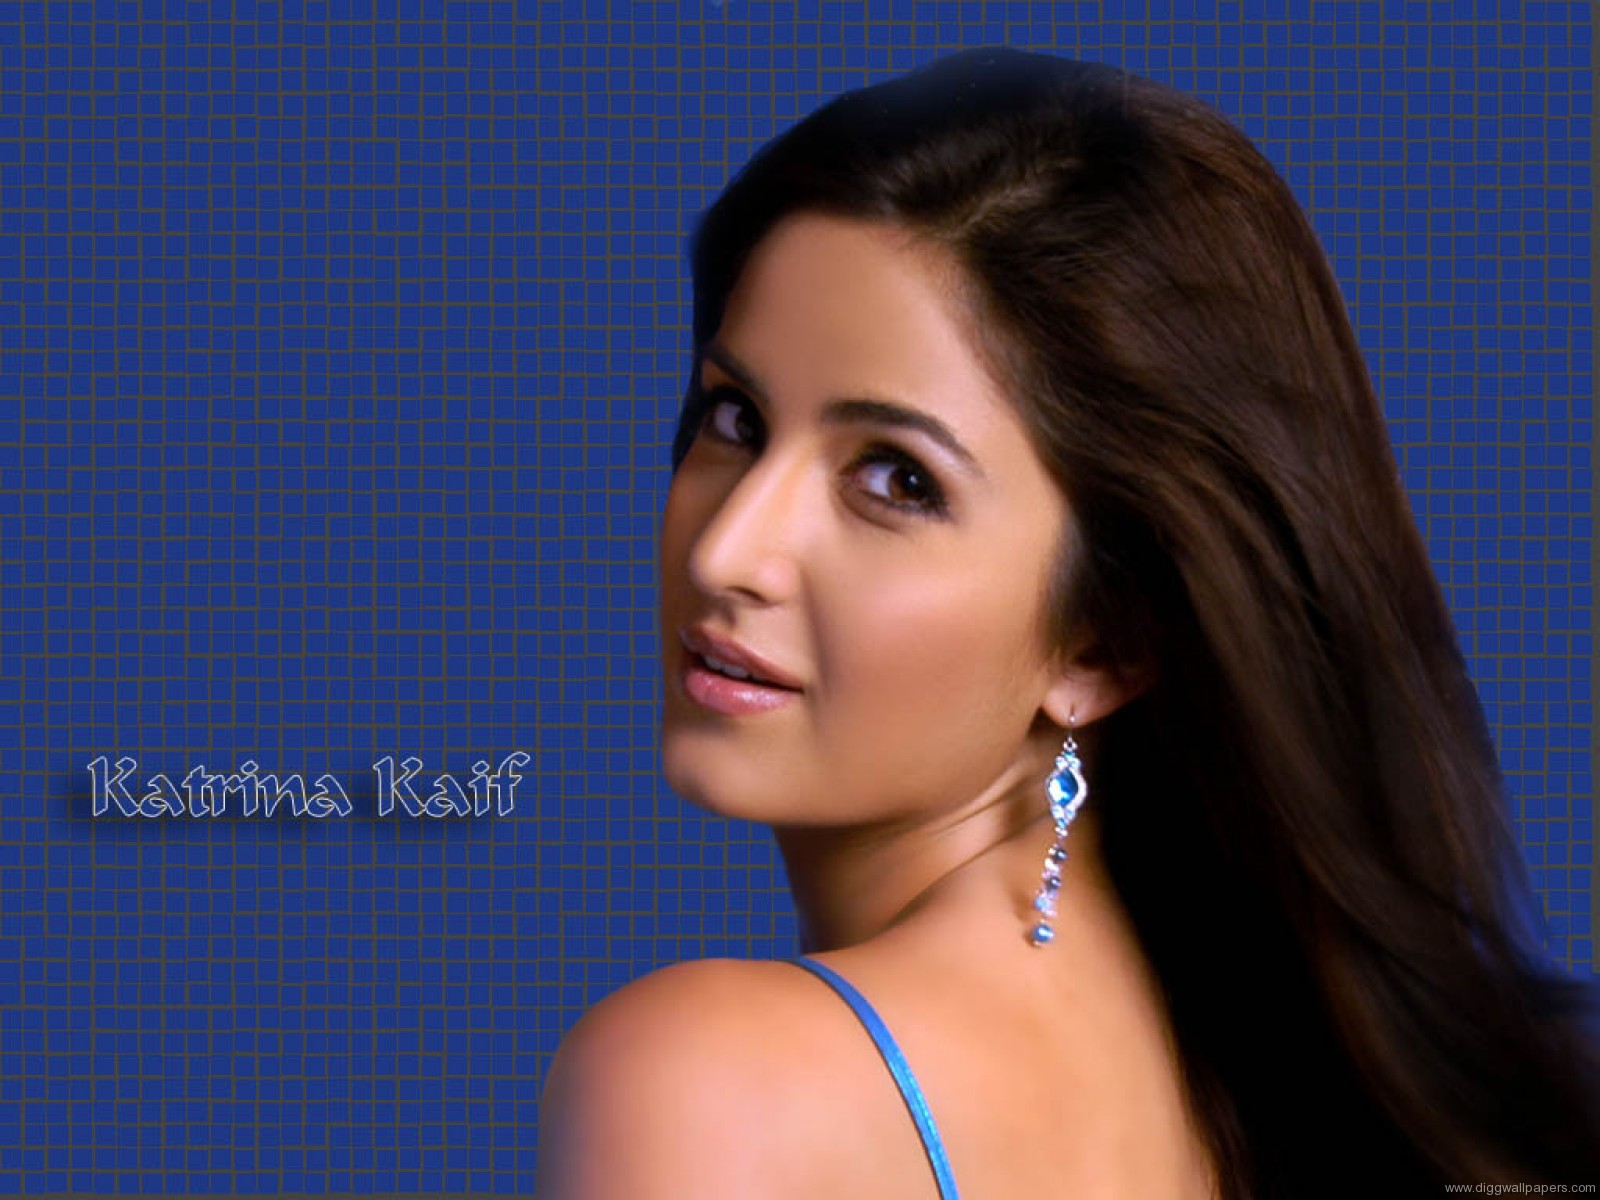 Katrina Kaif Hd Wallpapers For Desktop  Full Hd Wallpapers-3234